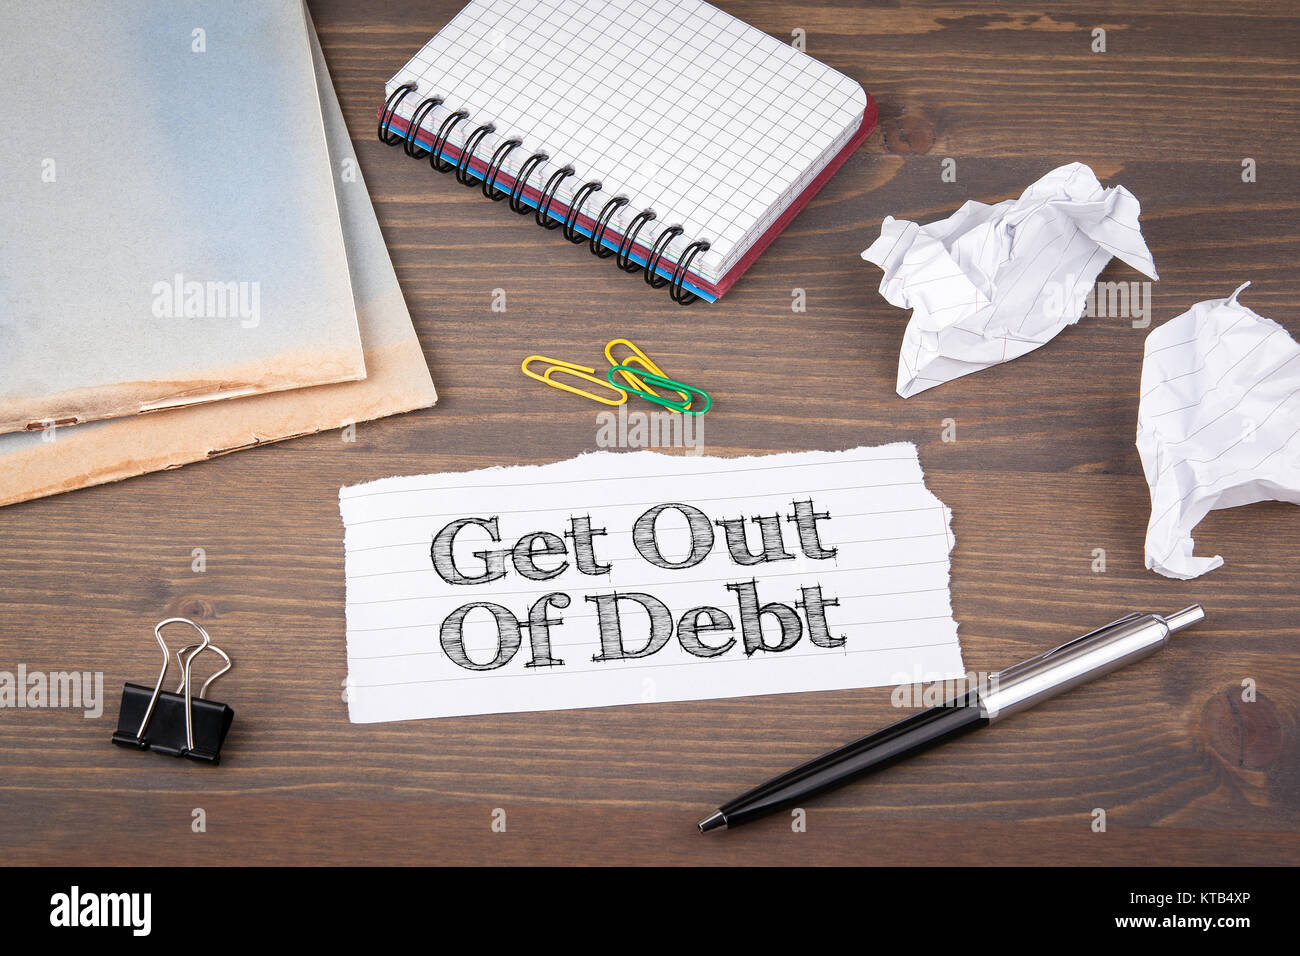 Get Out of Debt. paper sheet from the booklet on the wooden table. Stock Photo